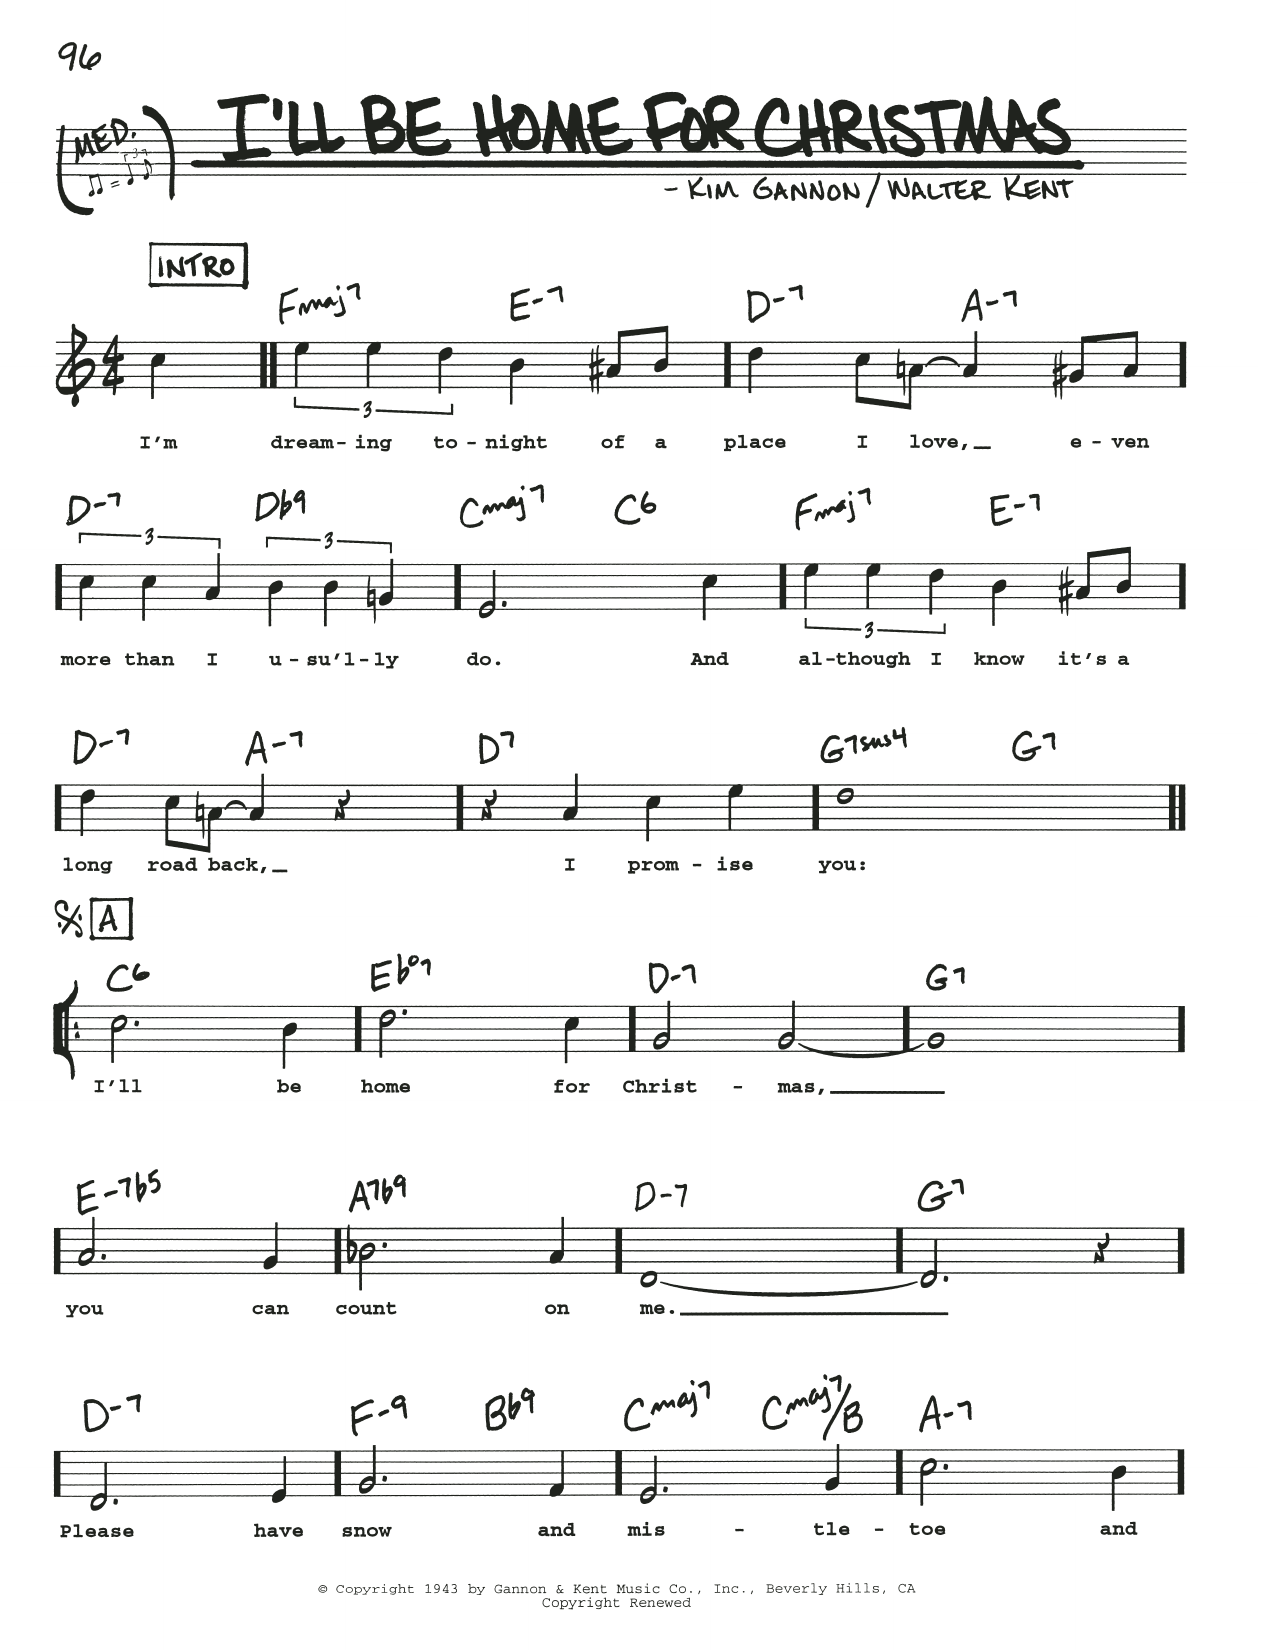 Ill Be Home For Christmas Chords.I Ll Be Home For Christmas By Kim Gannon Real Book Melody Lyrics Chords Digital Sheet Music